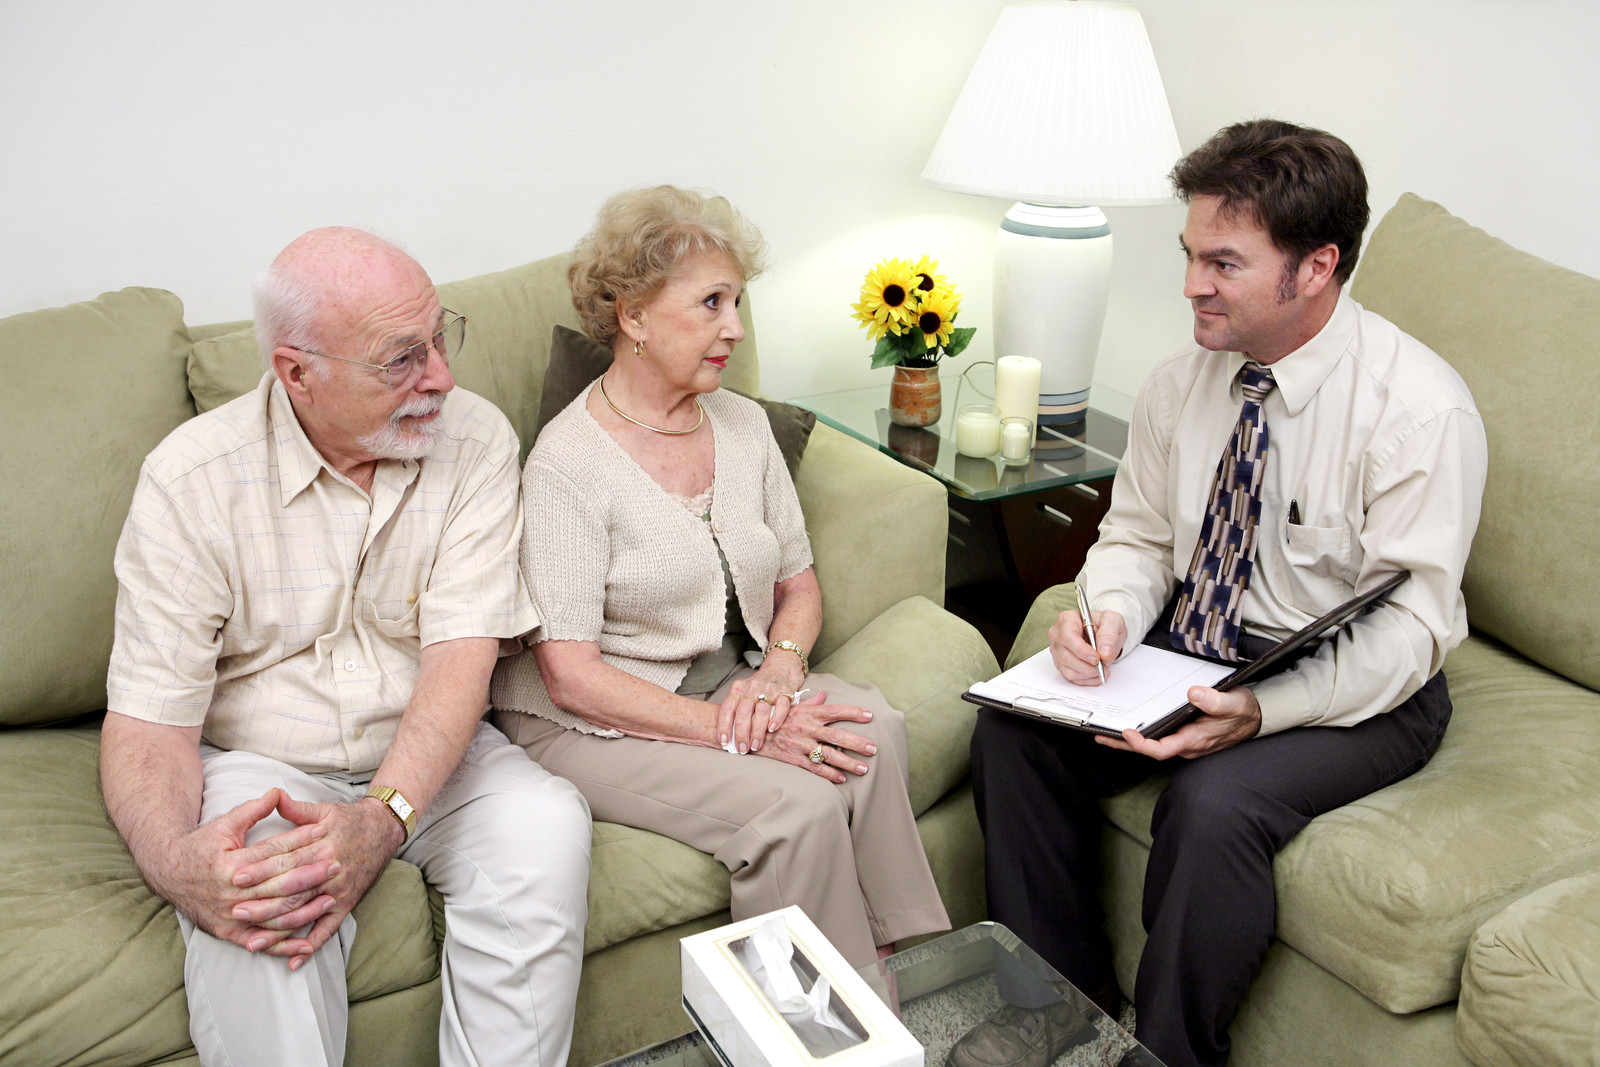 Seniors couple sitting on a couch talking with a man who is sitting kitty corner on another couch, in a button down and tie holding a pad of paper